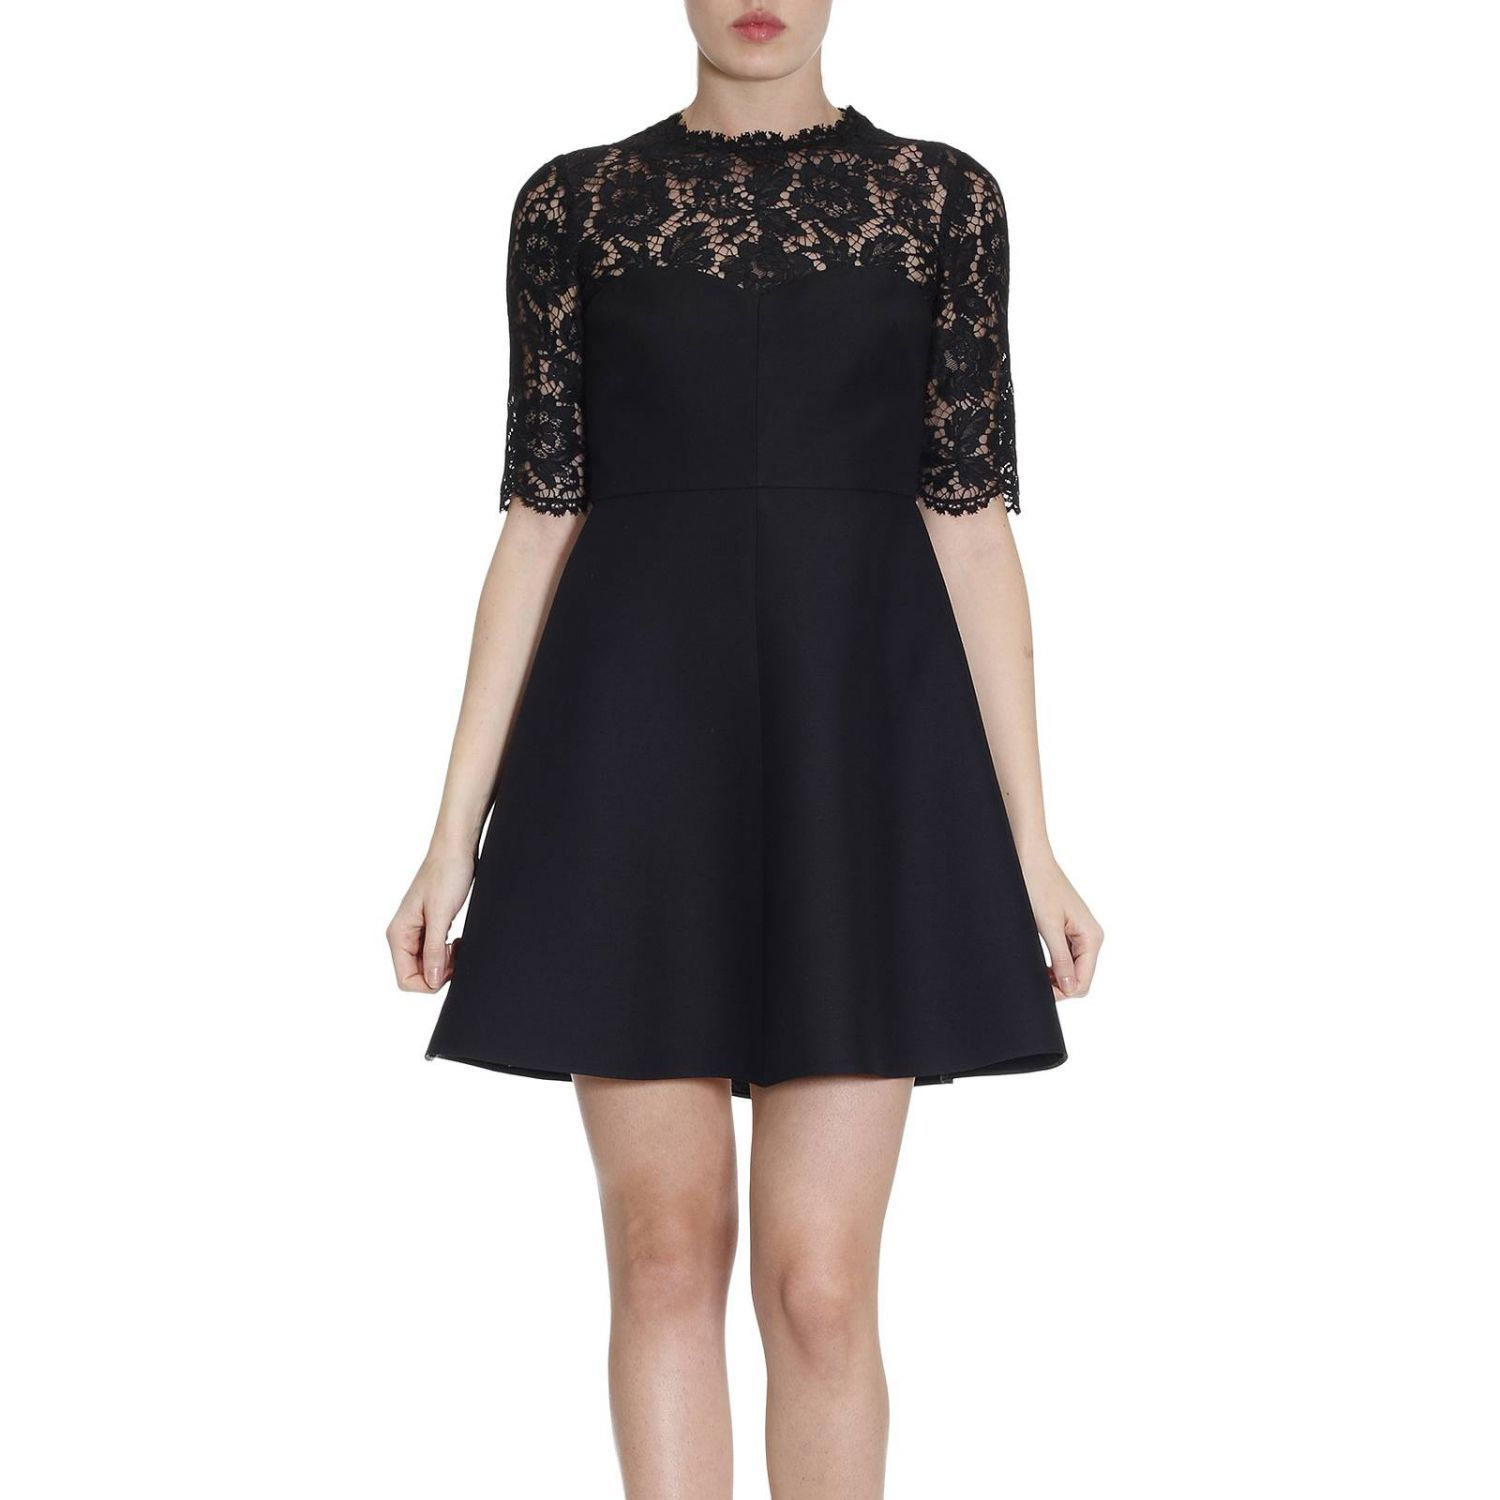 Dress Flared Dress With Floral Lace And 3/4 Sleeves